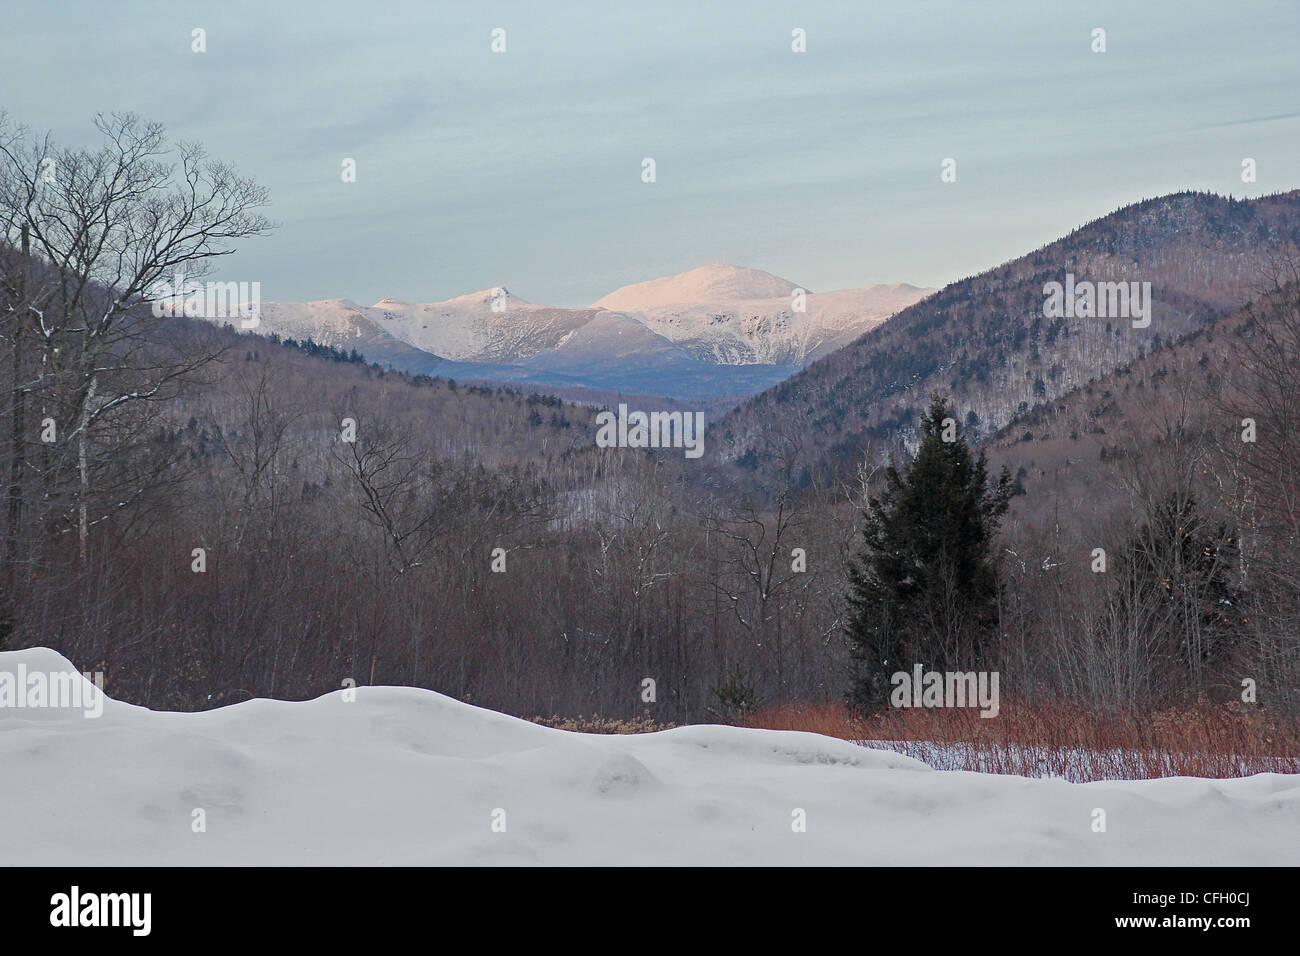 A winter view of the White Mountains from Crawford Notch State Park, New Hampshire Stock Photo